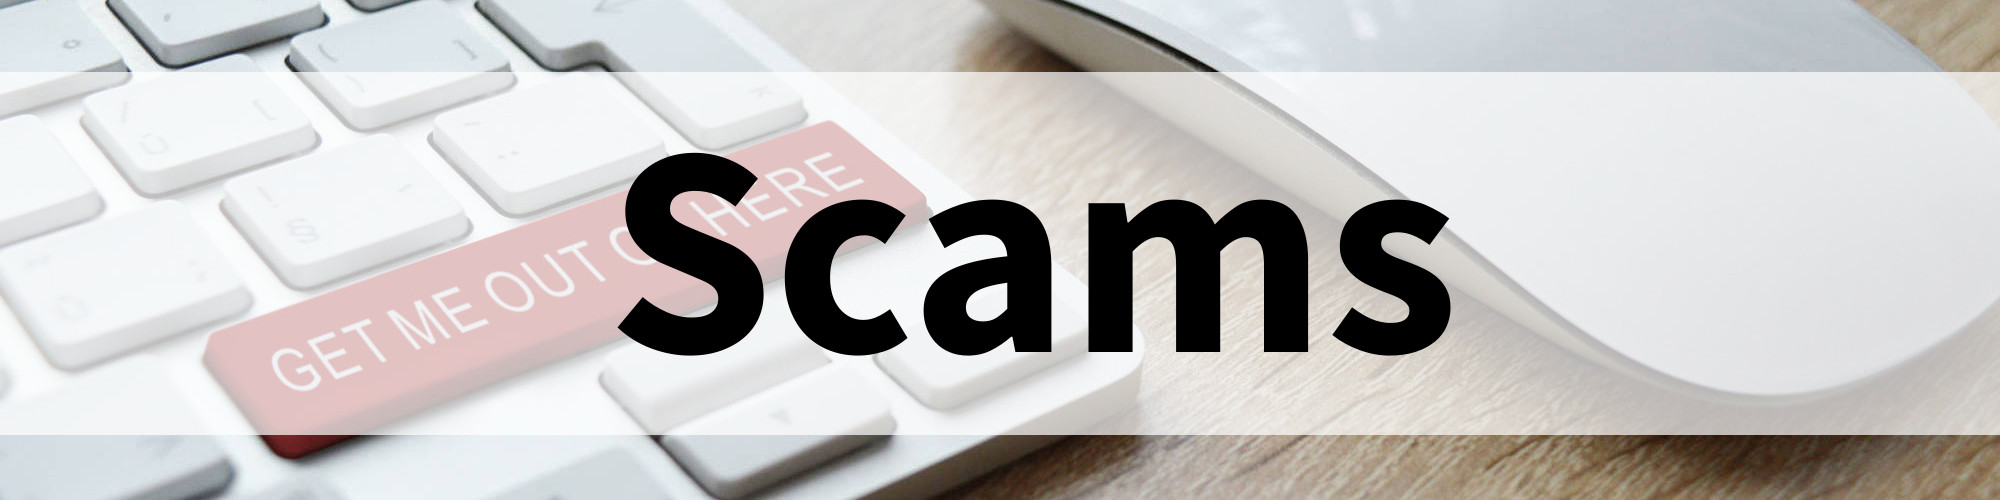 Scams